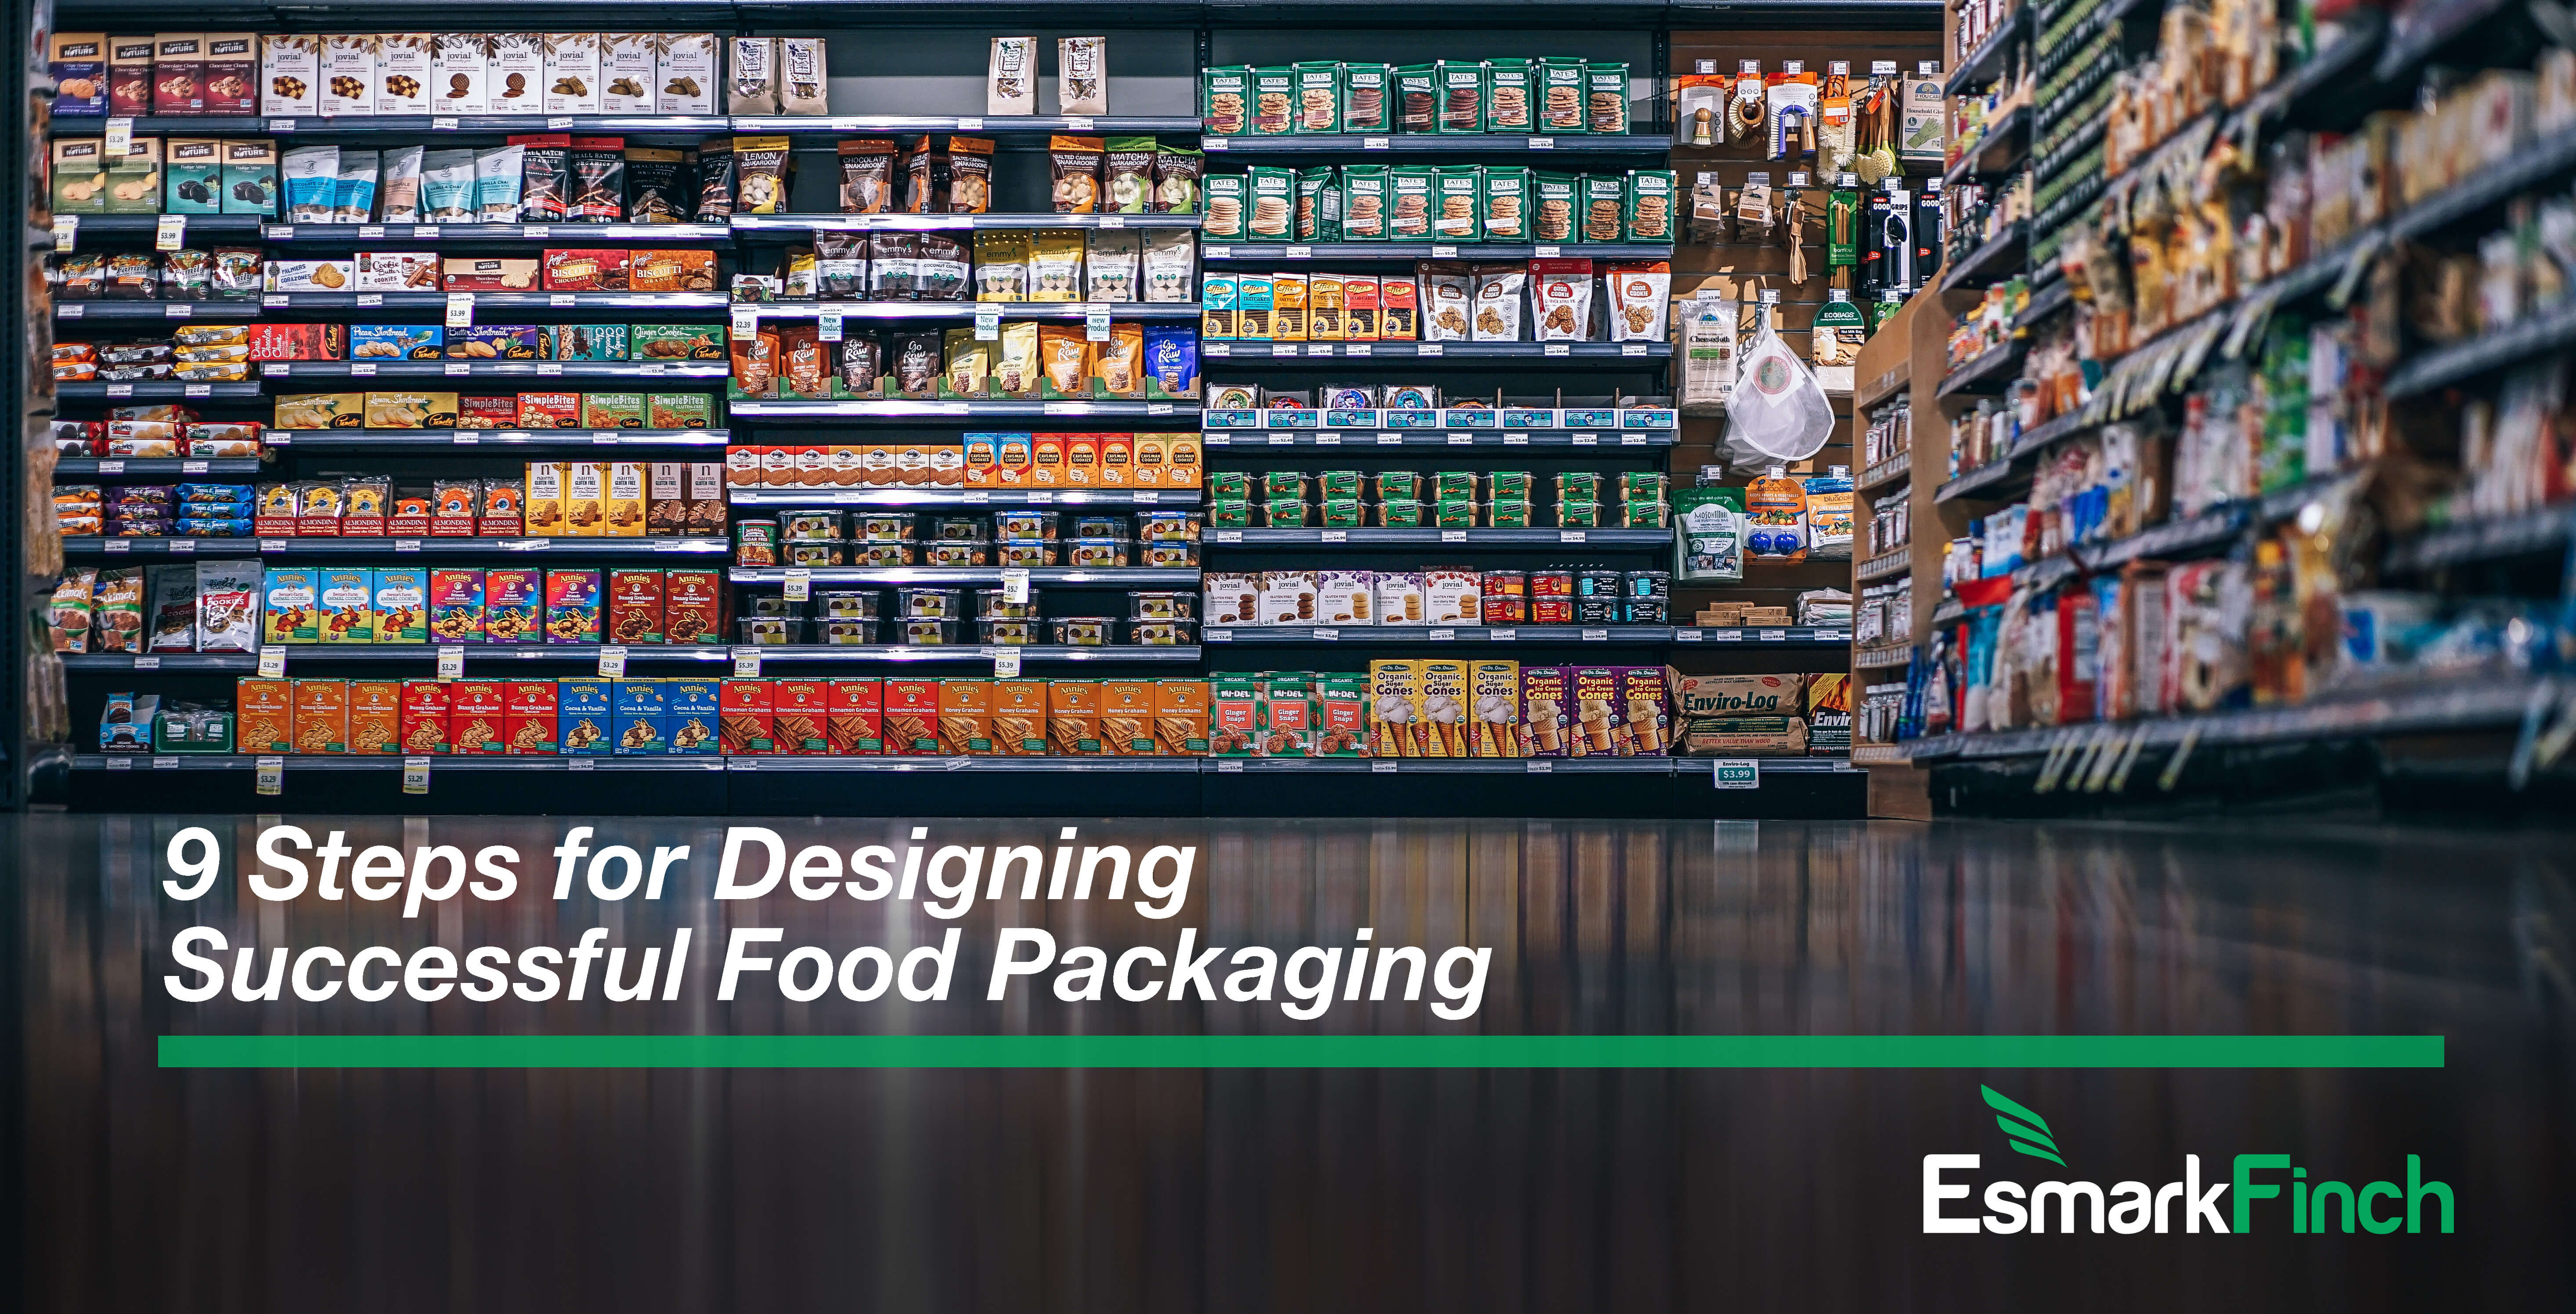 9 designs for designing successful food packaging with Esmark Finch